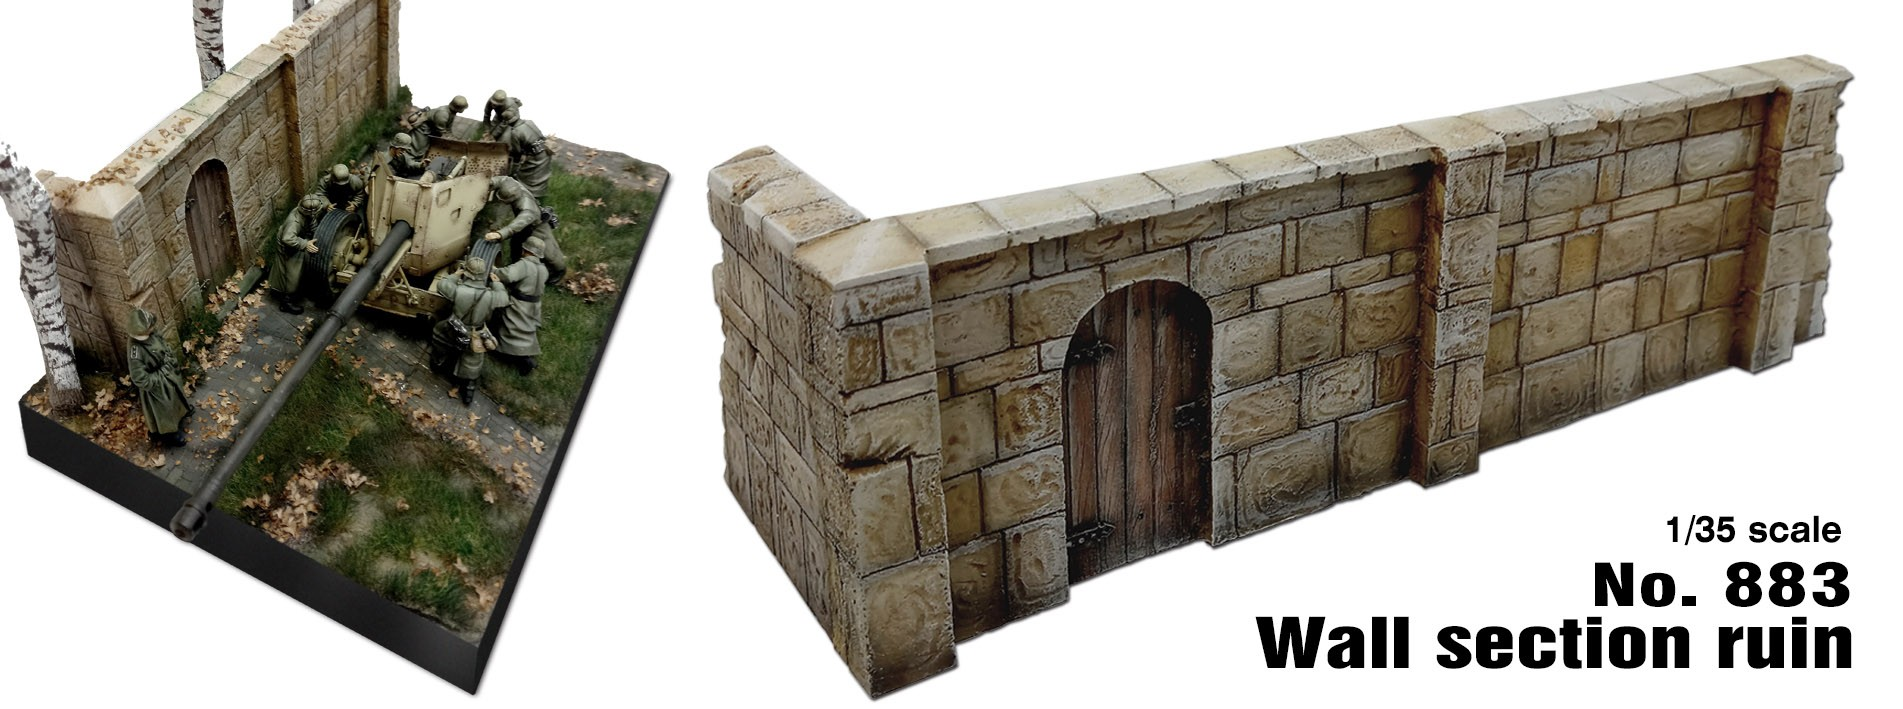 Wall section ruin (1/35 scale)